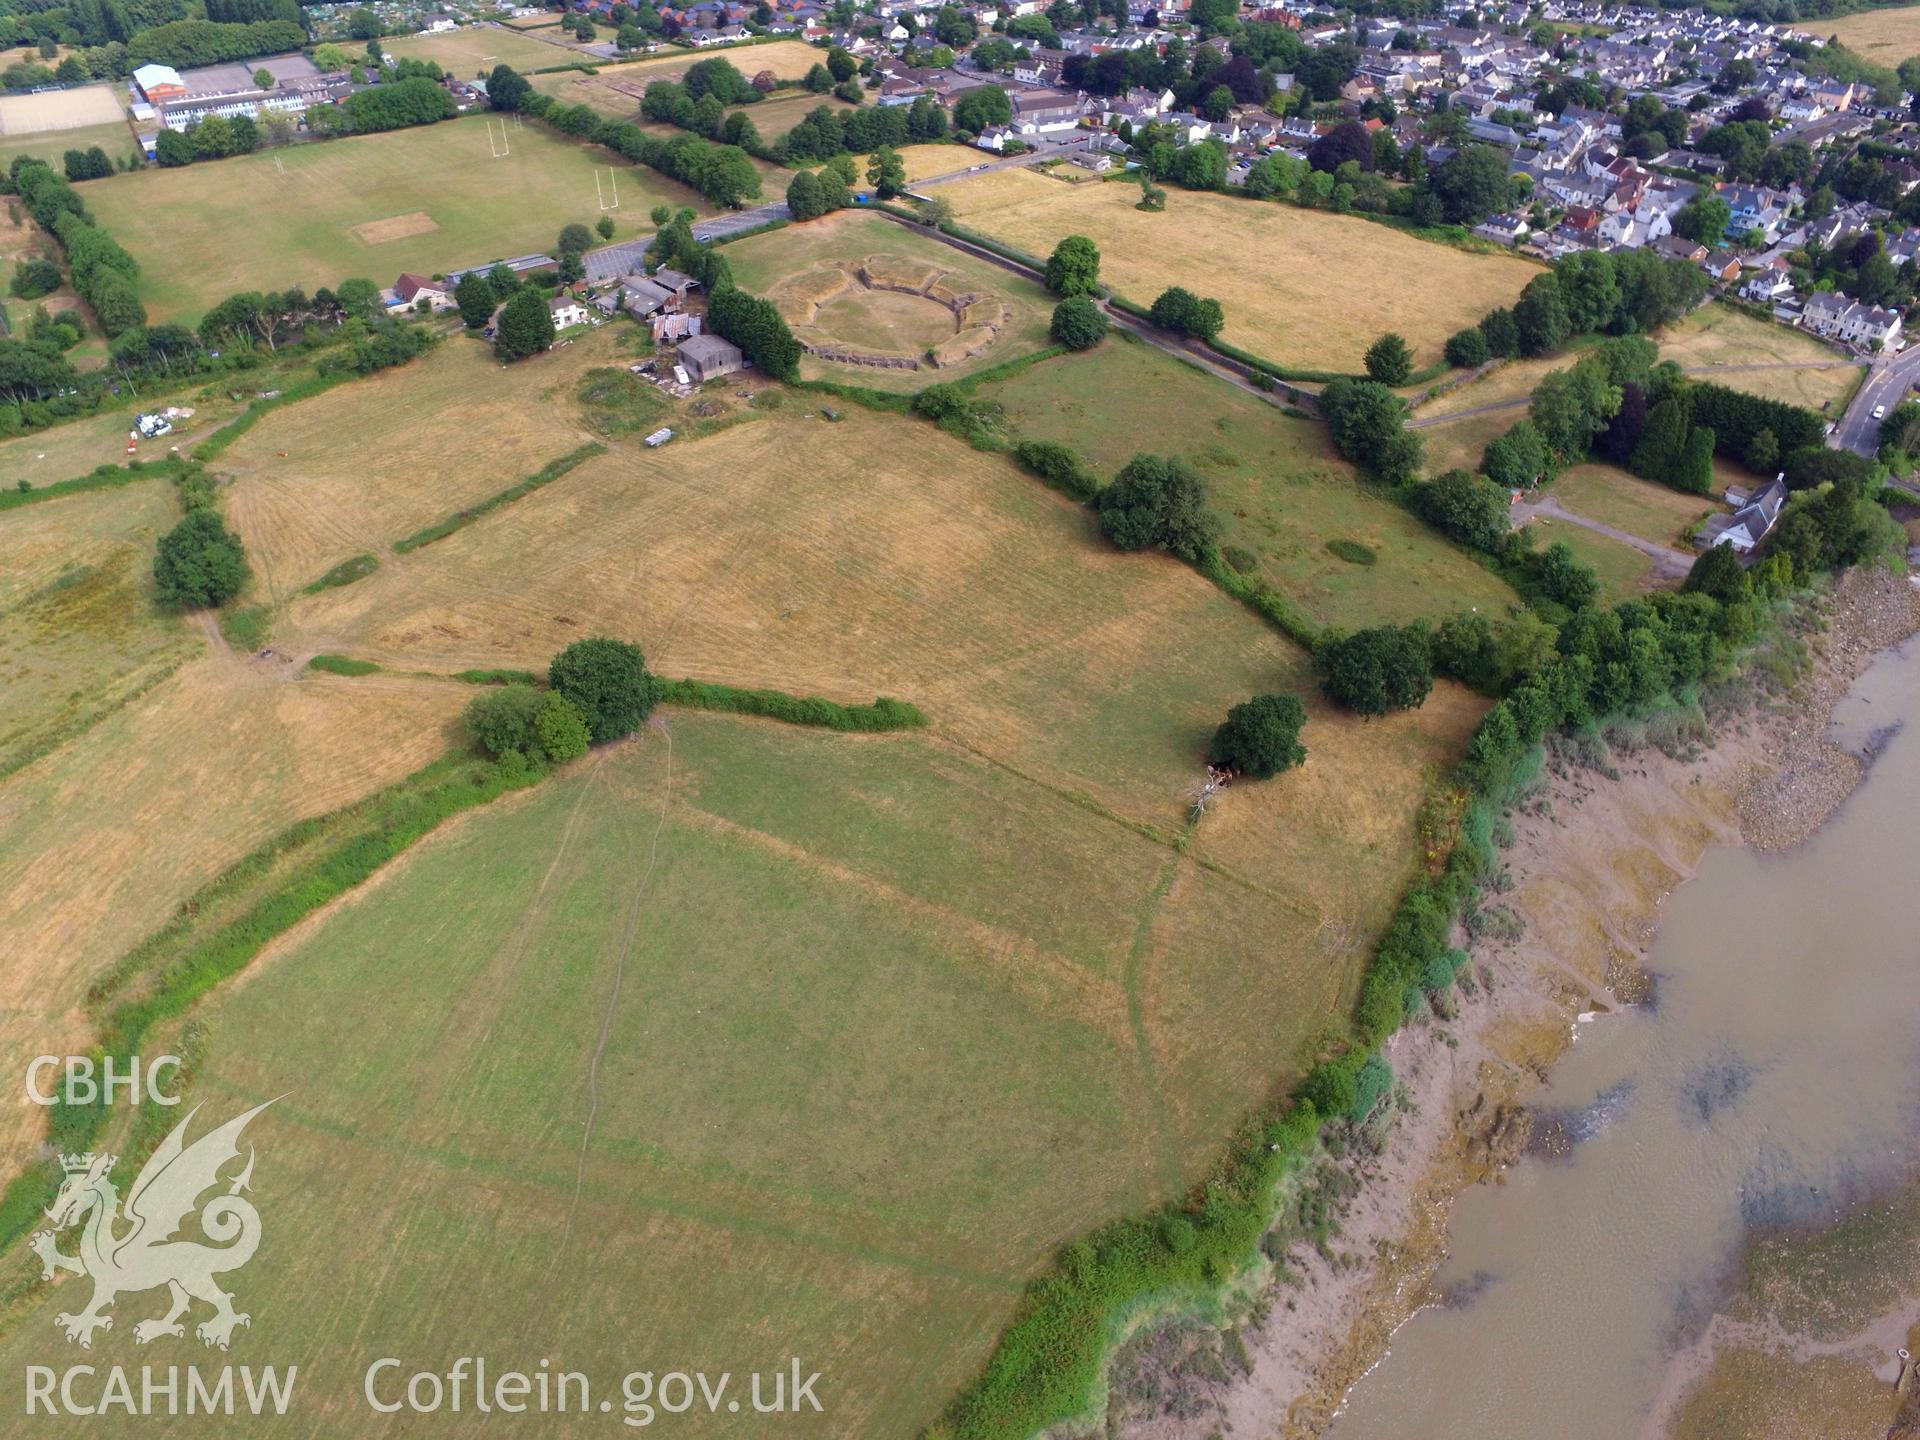 Colour photograph showing the remains of Isca Leginary Fortress, now the town of Caerleon. Photograph includes view of the Roman amphitheatre. Taken by Paul R. Davis on 22nd July 2018.